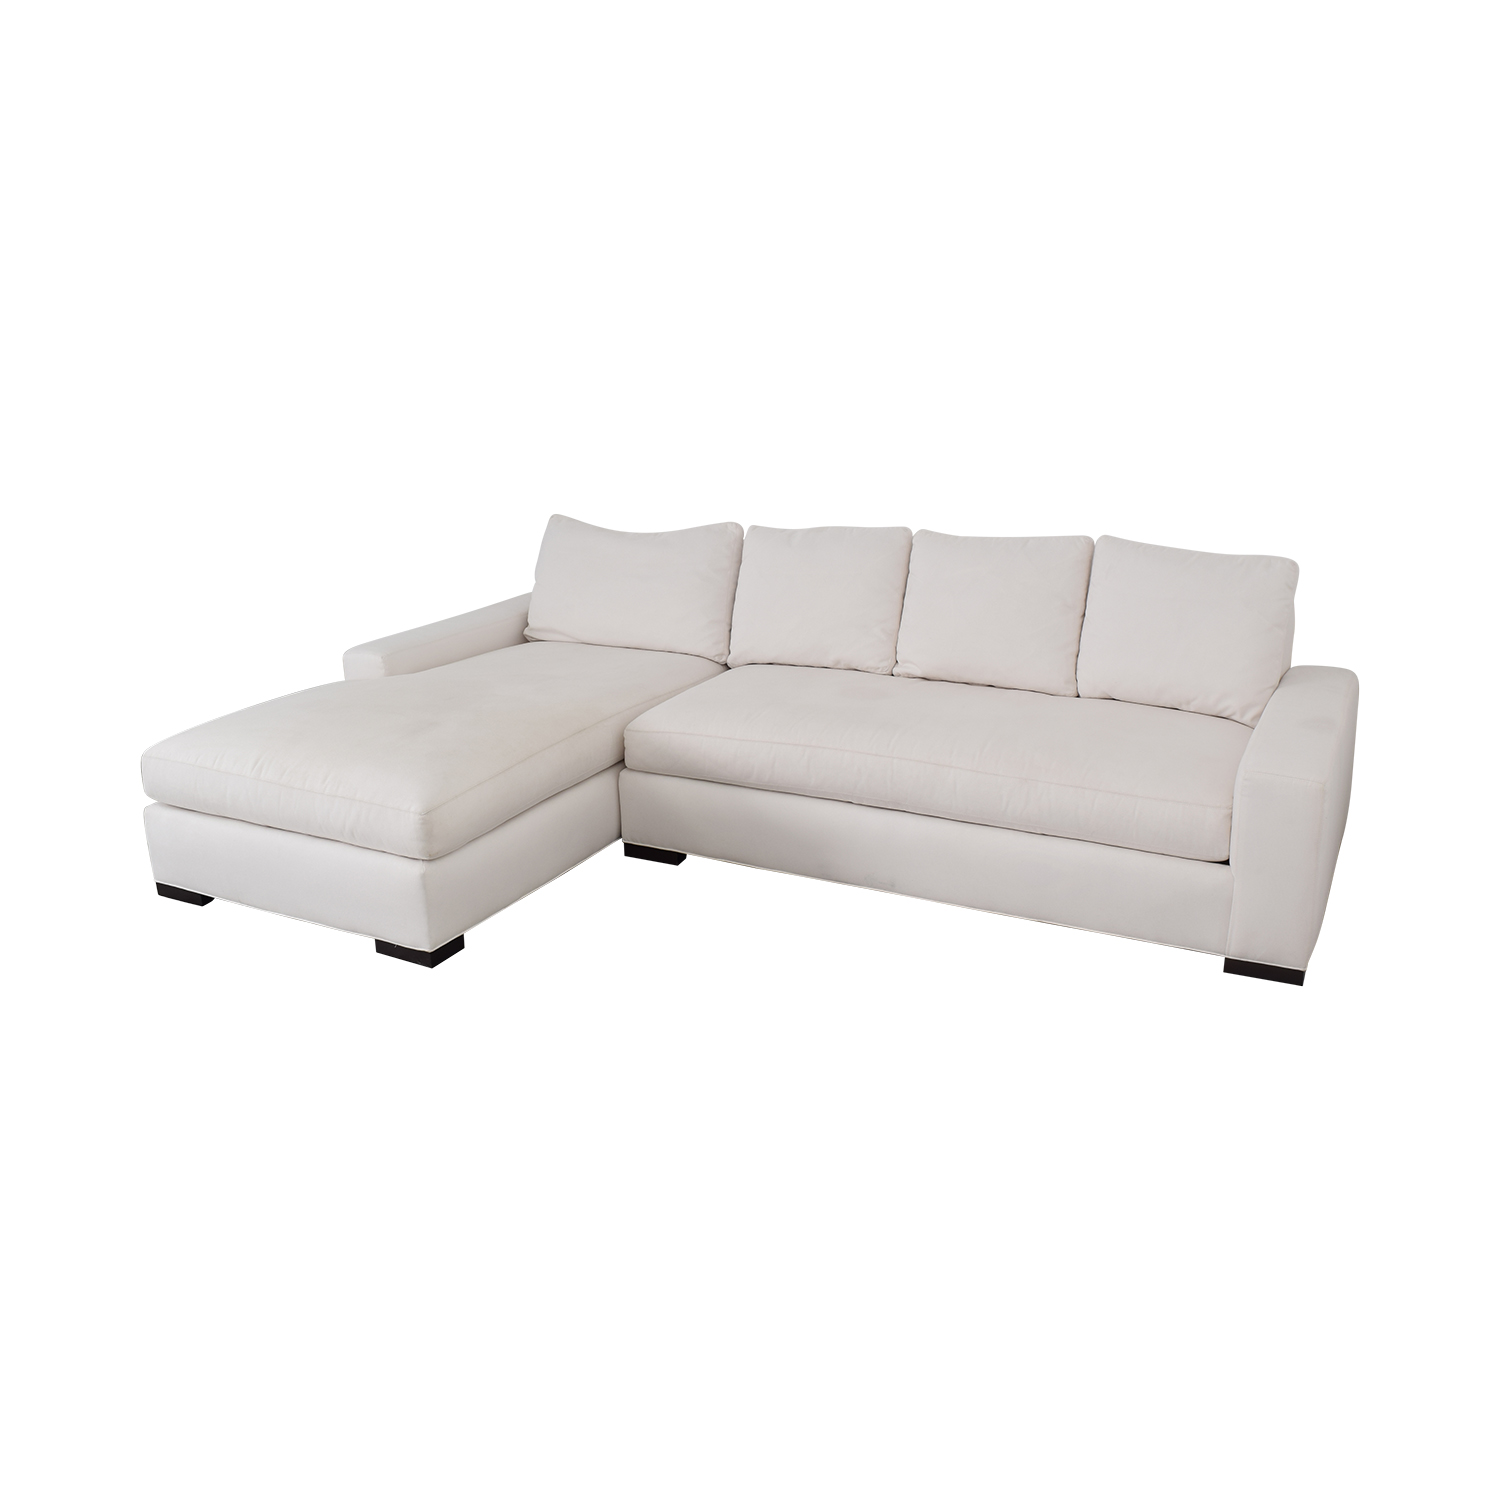 buy Williams Sonoma Sectional Sofa with Chaise Williams Sonoma Sectionals